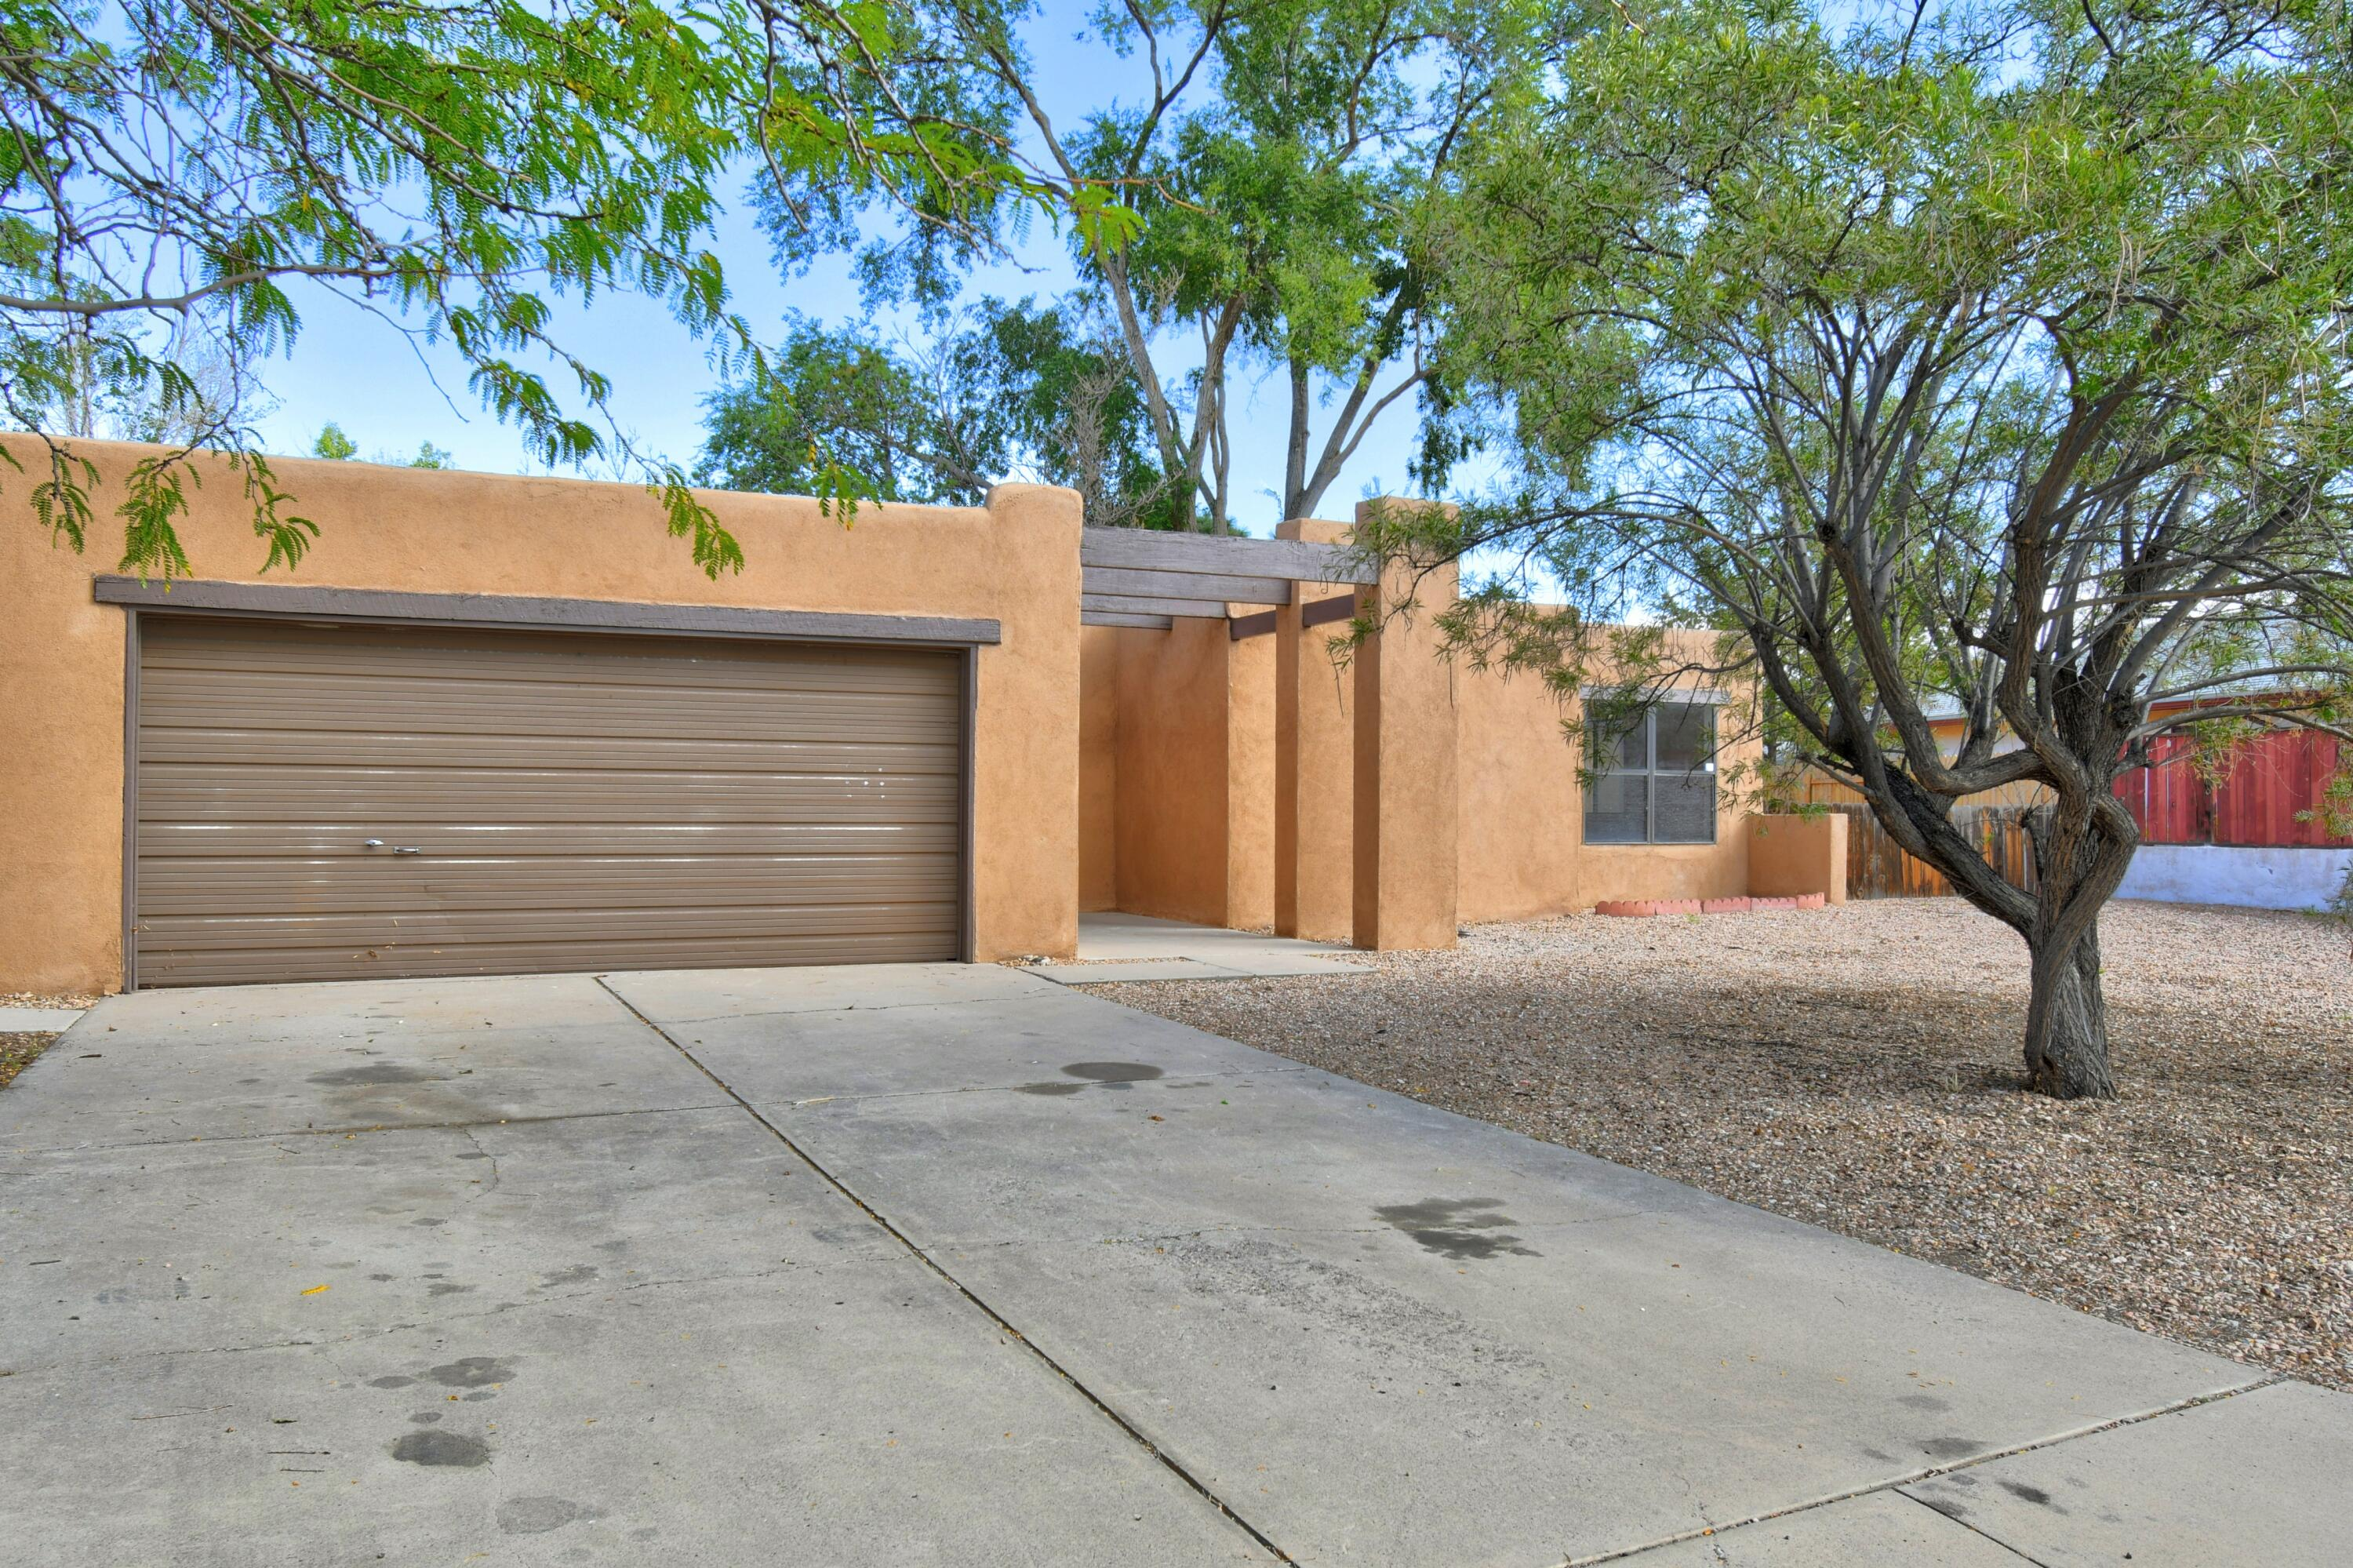 ***Pending, but will accept back up offers***Beautifully remodeled southwestern home. Open concept living room, dining area, and kitchen with sliding glass door to covered patio. Kitchen is bright and white with stunning granite countertops, black appliances, and a bold black range. Newly remodeled master ensuite with double vanity. Spacious 2 Car Garage. Easily maintained fenced in back yard with a dog run and large storage shed that conveys with the property. BRAND NEW flooring, fixtures, lighting, paint, bathroom vanities, and hardware throughout. Walking distance to Sierra Vista Elementary School. Shopping & Amenities close by. Don't let this one get away!